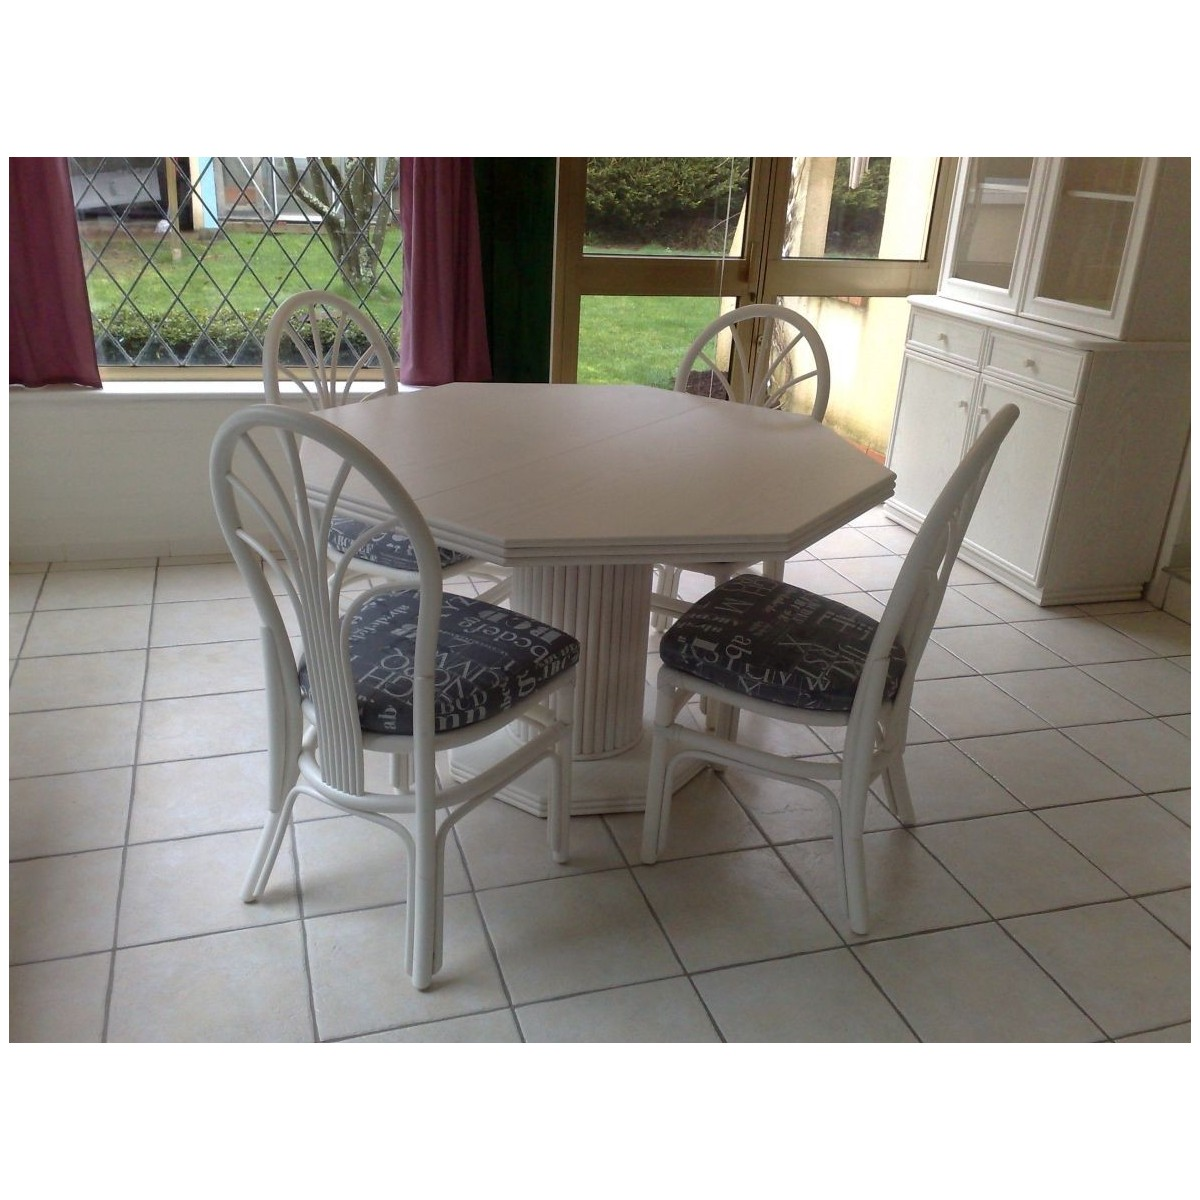 Table de salon en rotin octogonale pied central - Table a manger pied central ...